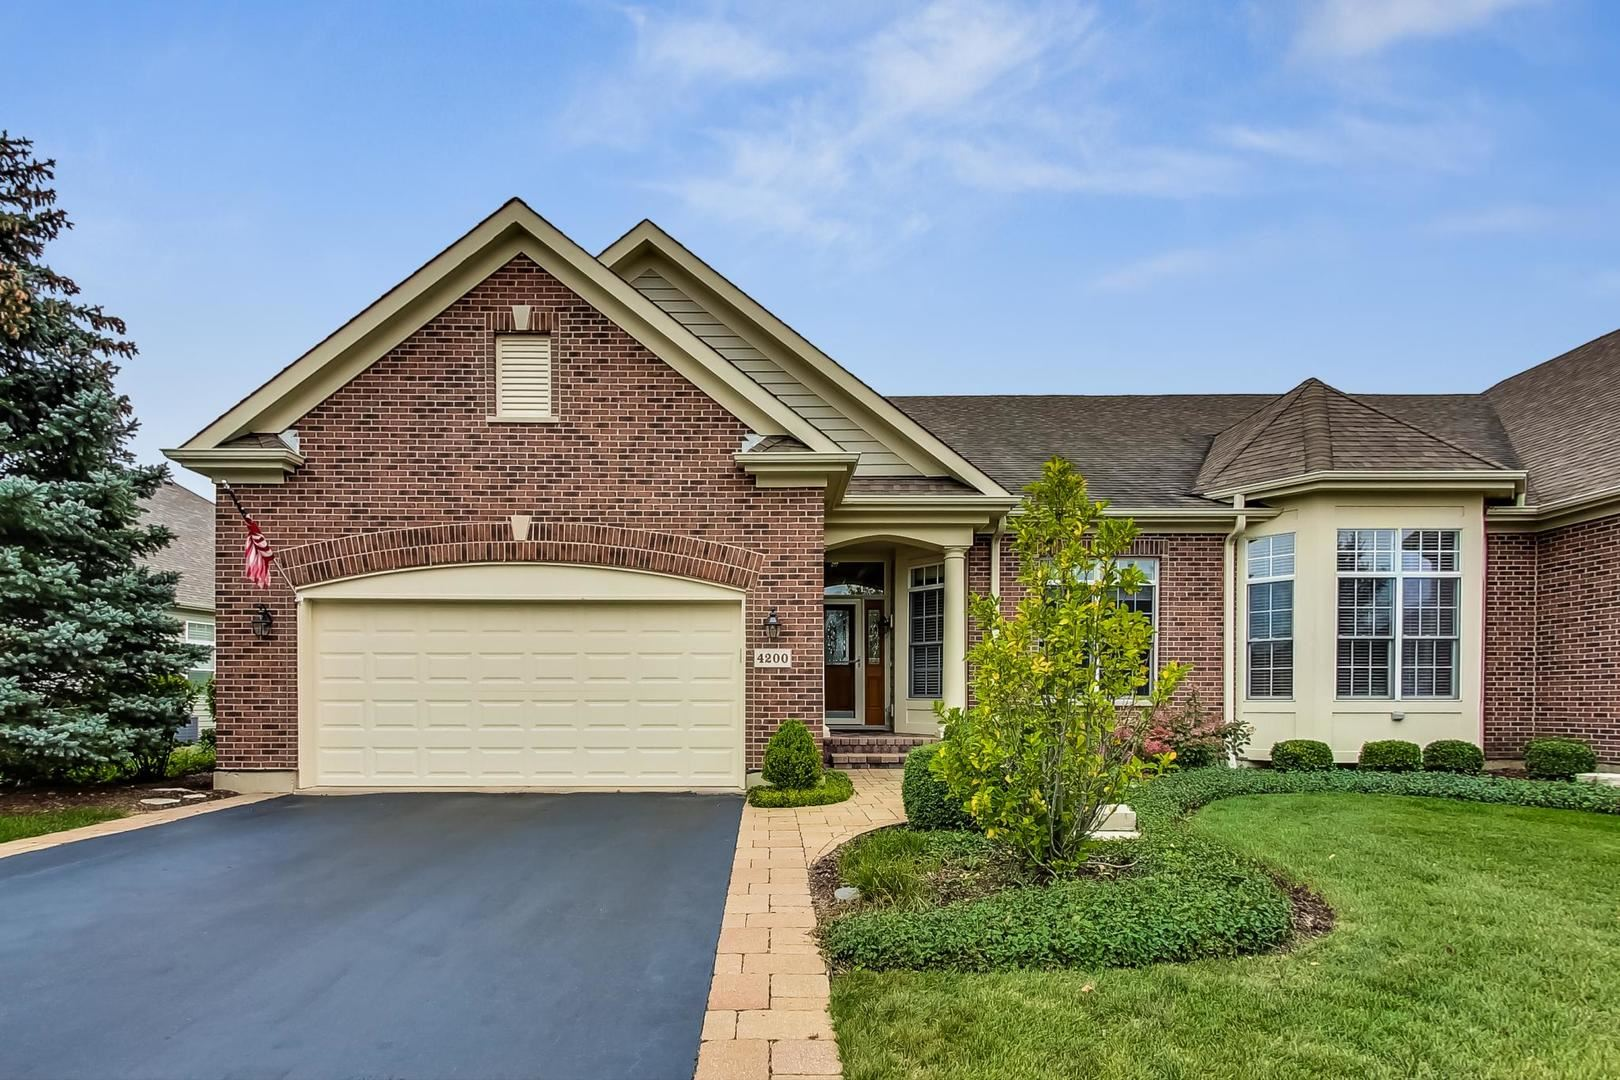 4200 Coyote Lakes Circle, Lake in the Hills, IL 60156 - #: 11237674